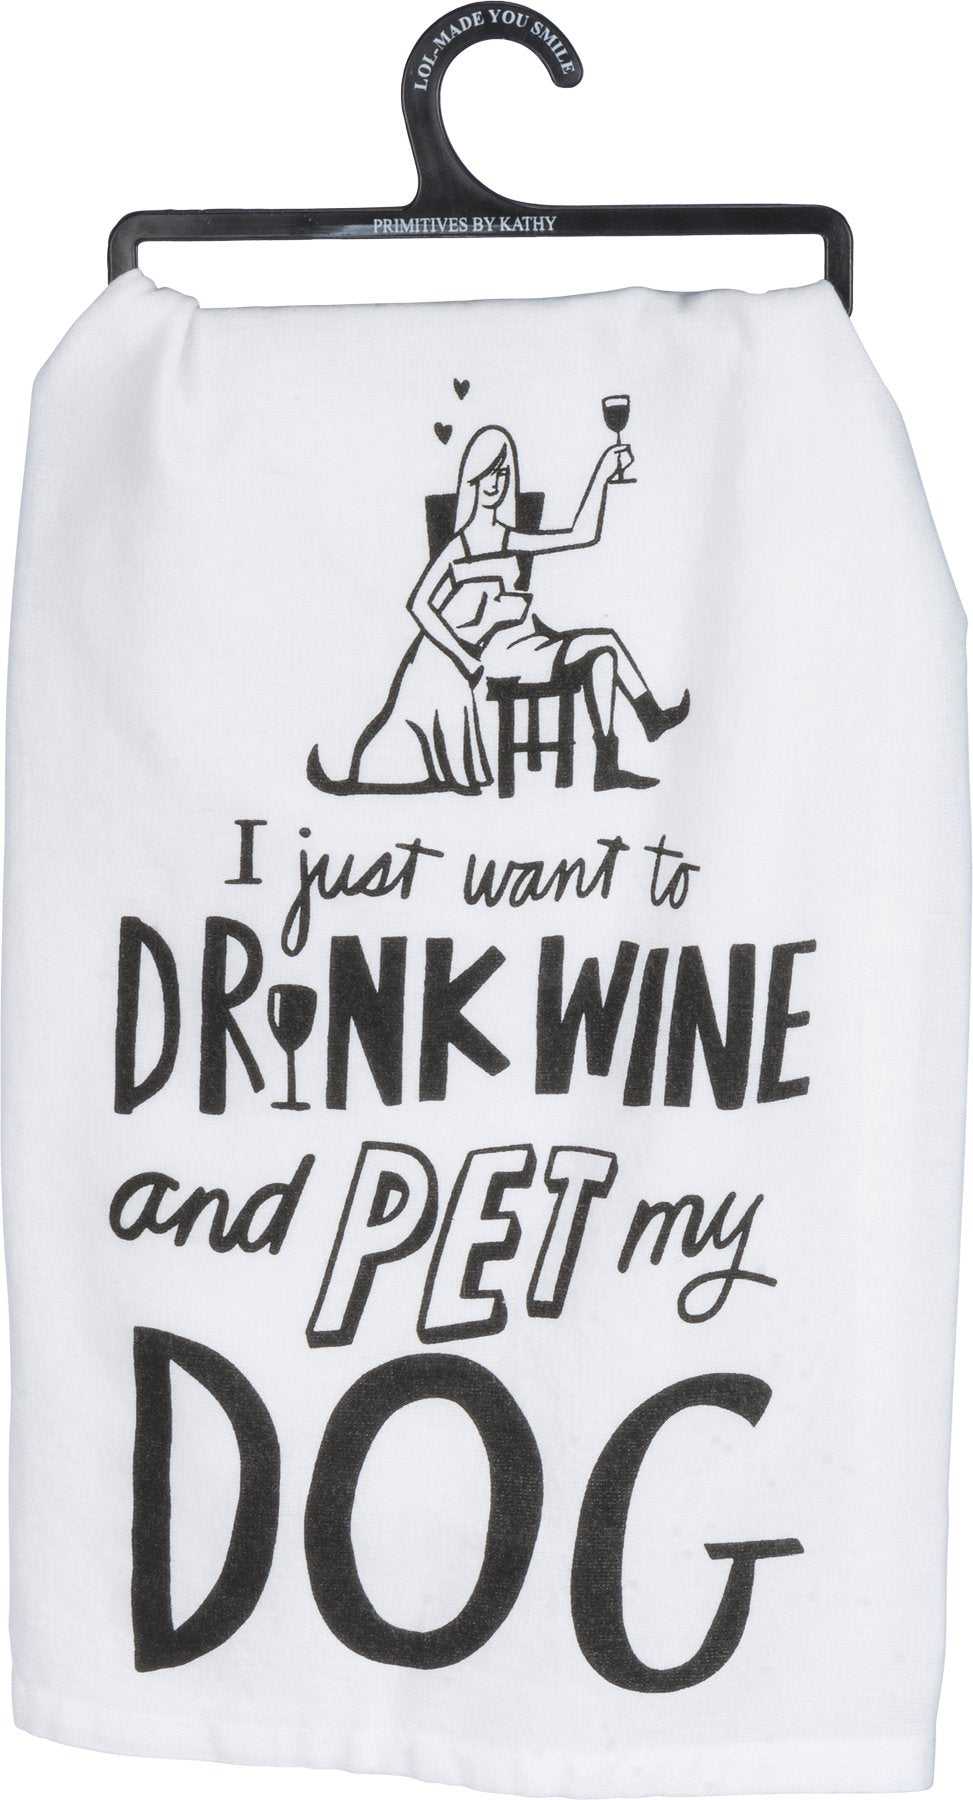 Drink Wine And Pet My Dog Dish Towel